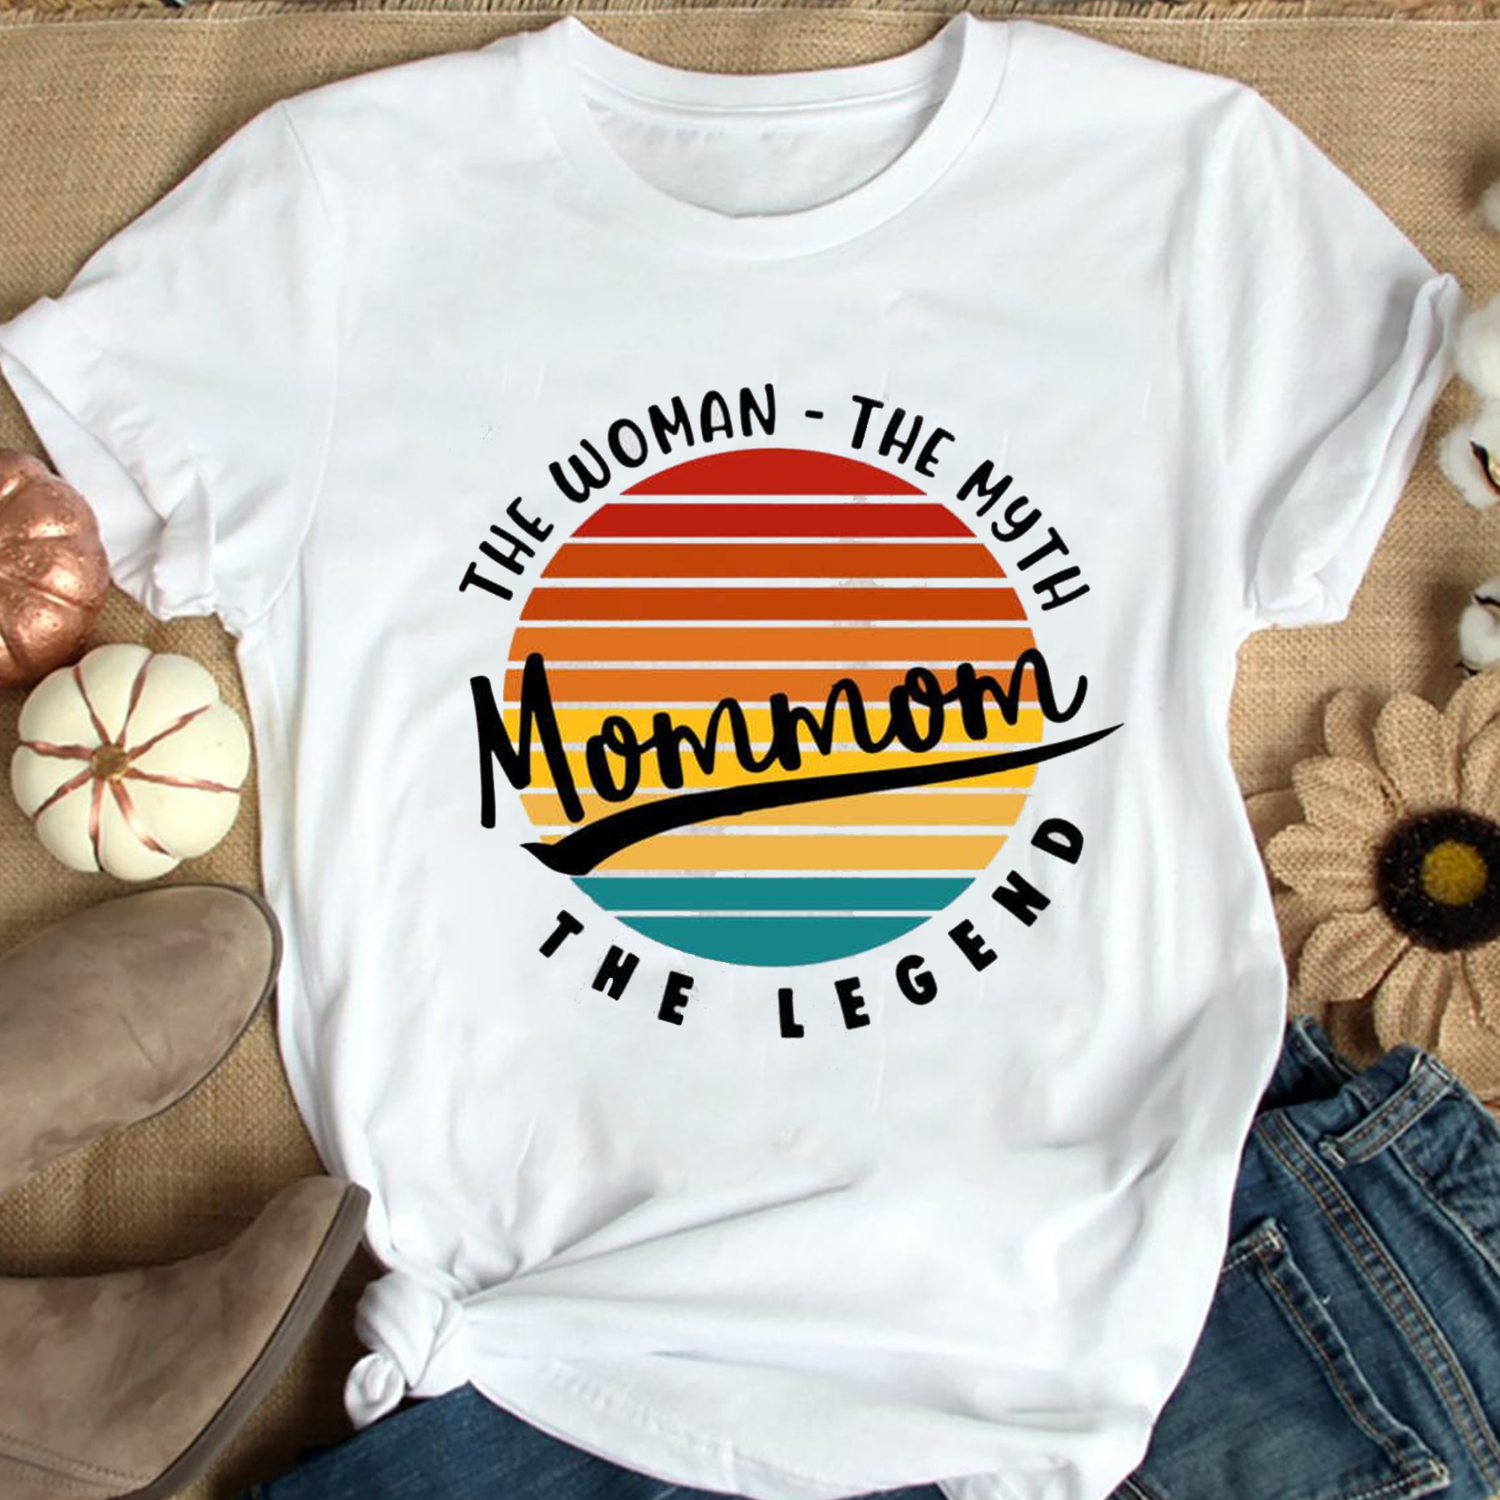 2021 Gift shirt,Momom The Woman The Myth And The Legend Retro Style Tee, Mother's Day Gift, Gift for Mom, Best Mom Ever, Gift for Wife Trending Unisex Hoodies Sweatshirt Long Sleeve V Neck Kid T Shirt